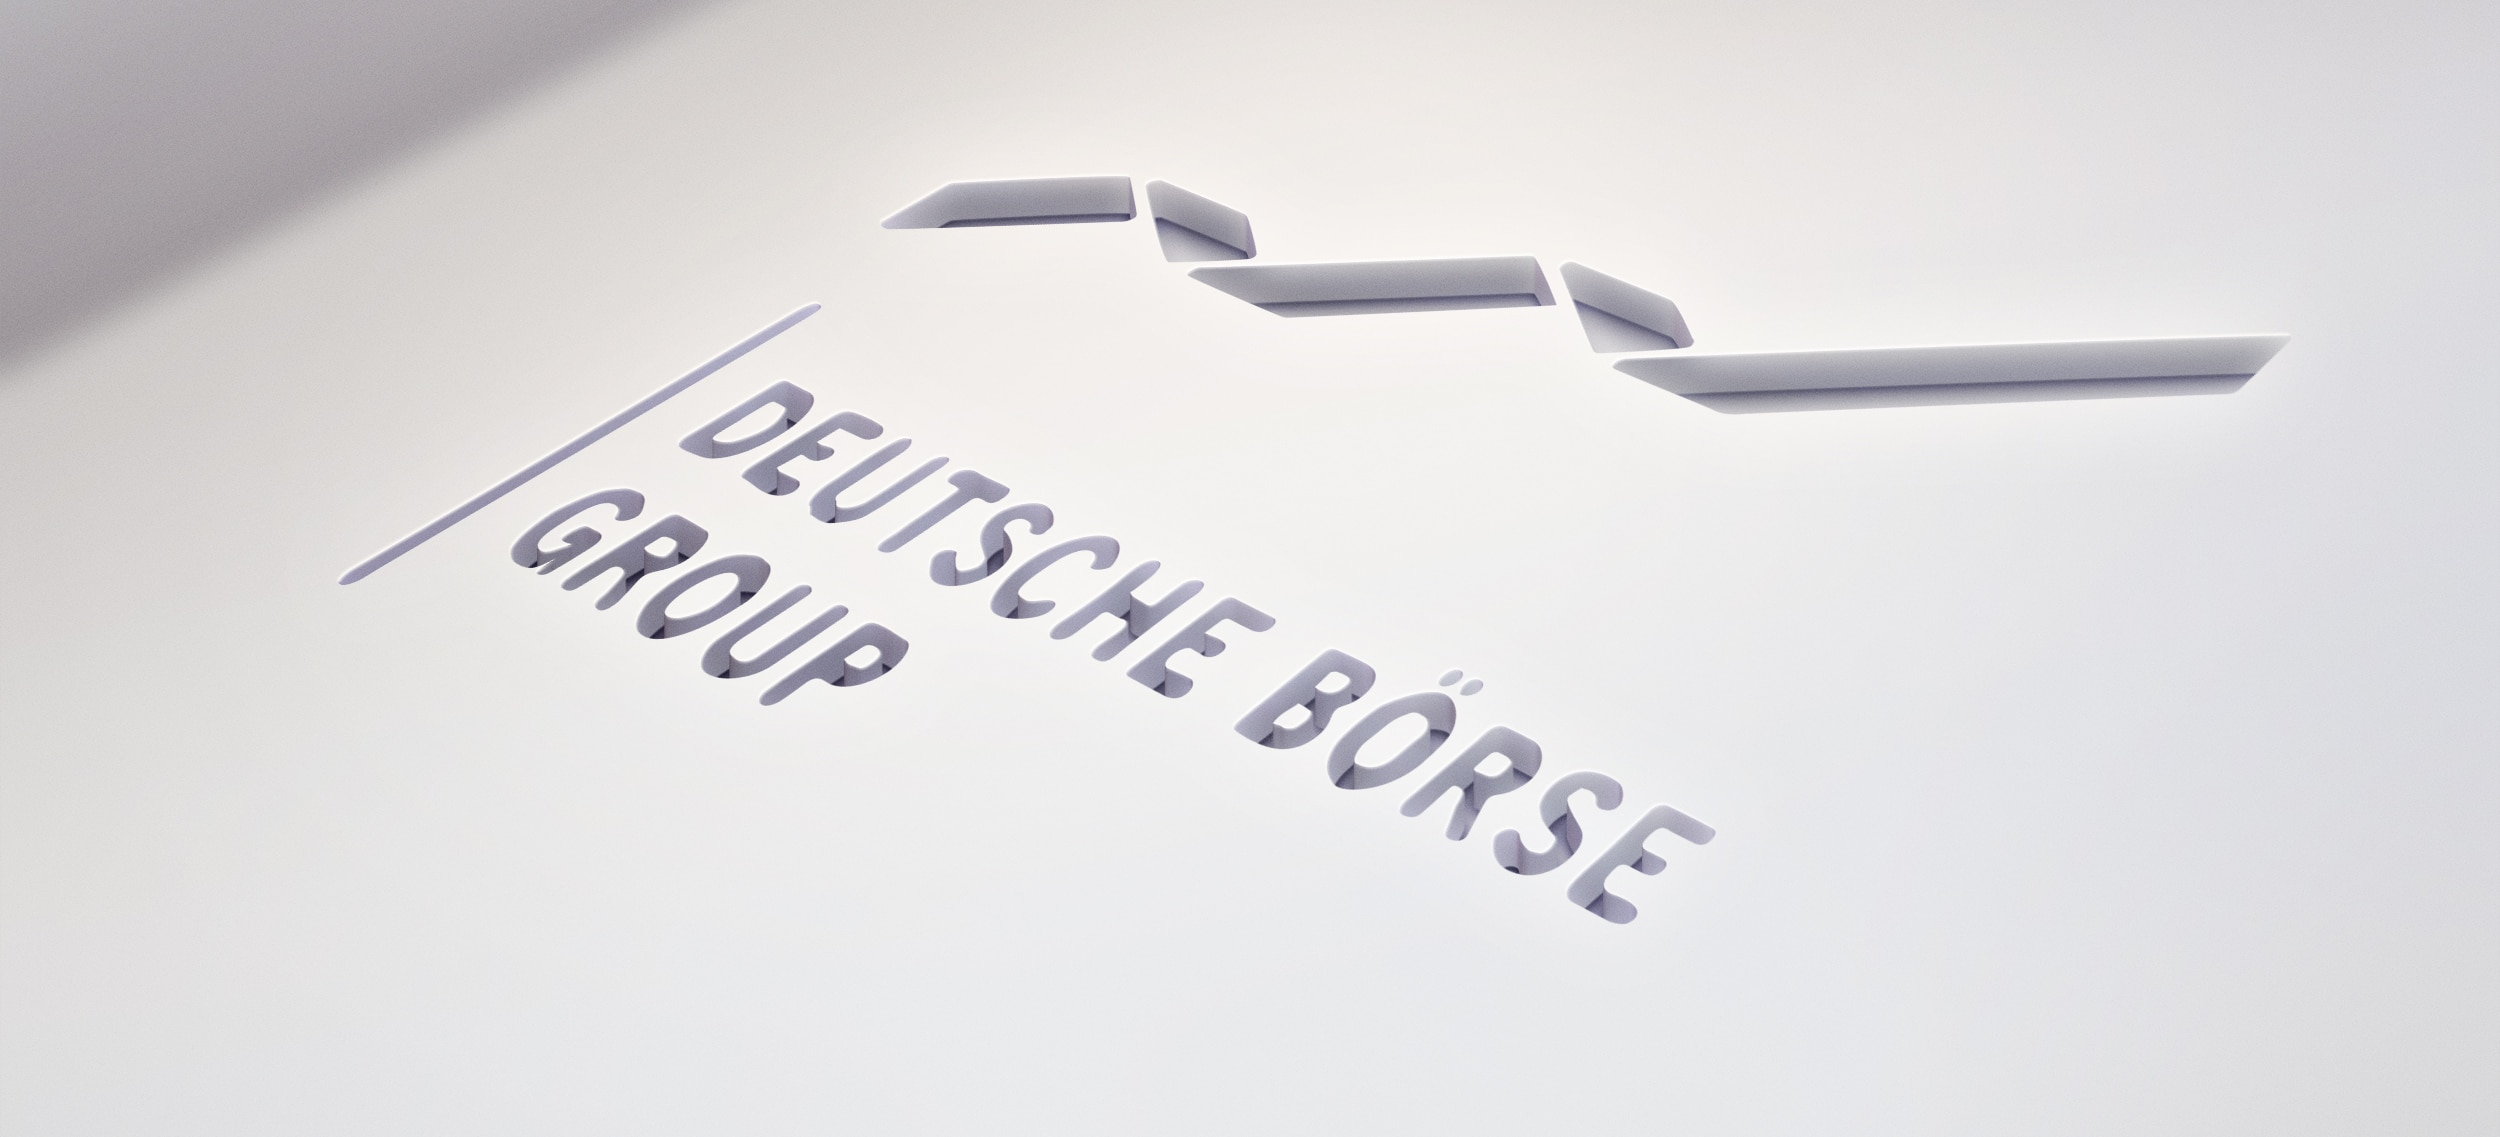 Deutsche Borse Reports Monthly Metrics, Order Book Turnover Dives